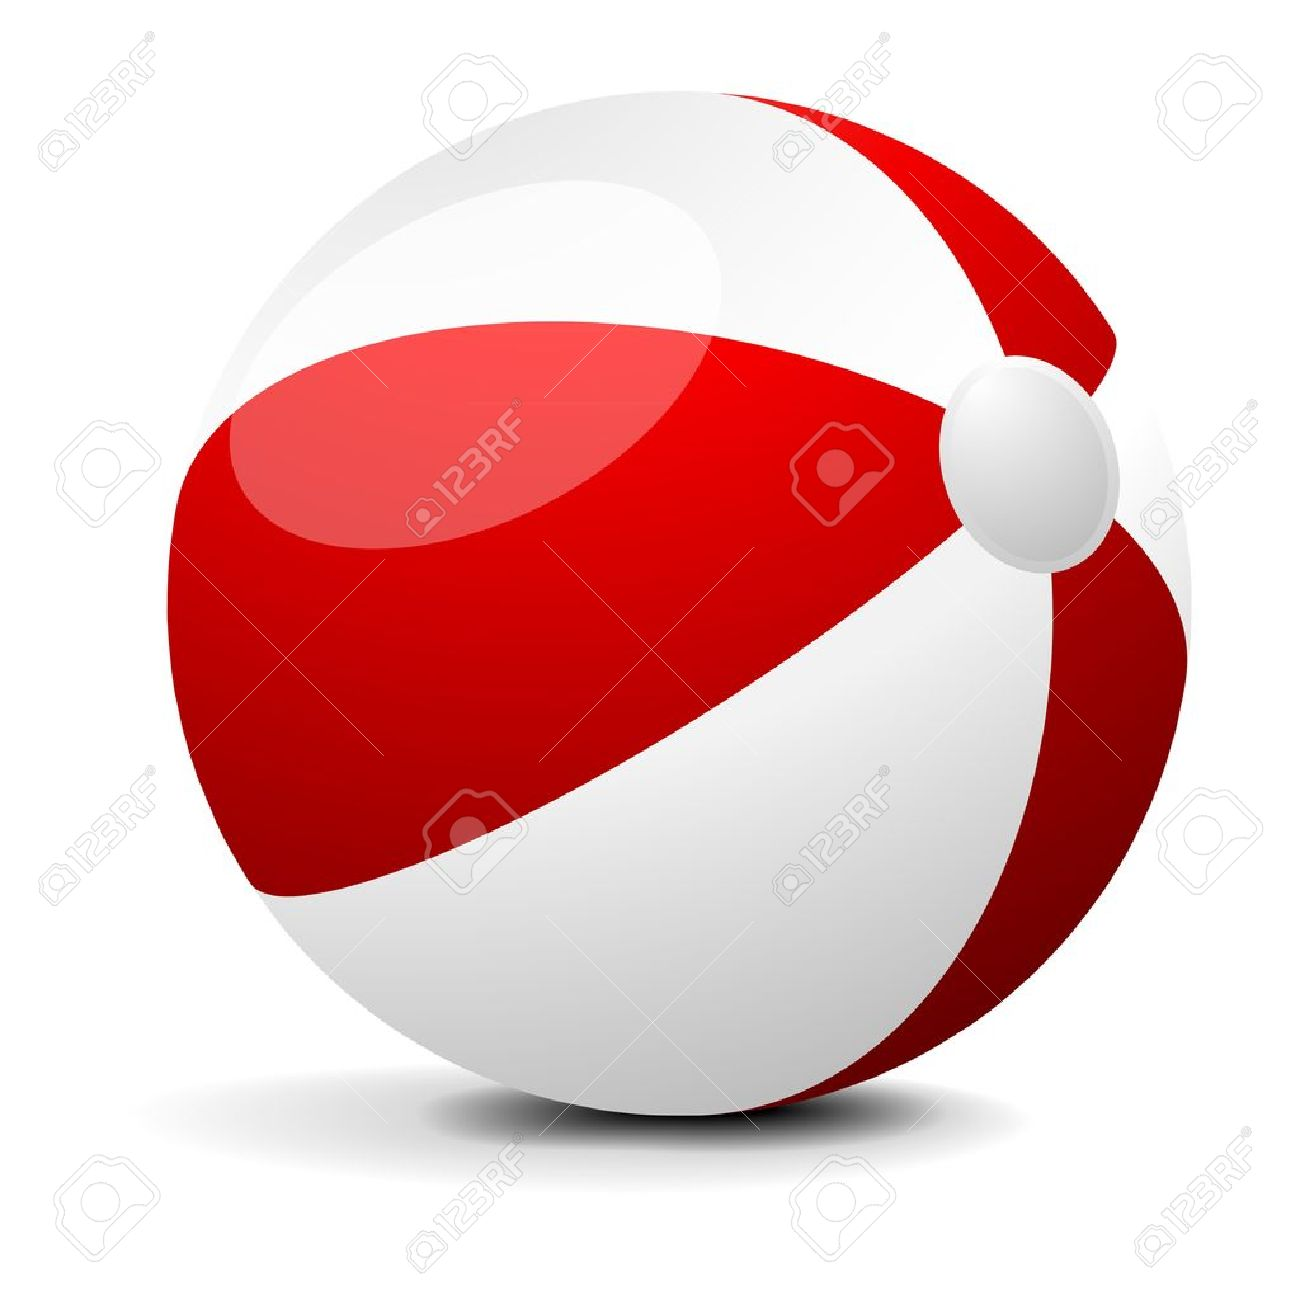 illustration of a red and white beach ball, eps 8 vector Stock Vector - 11856009